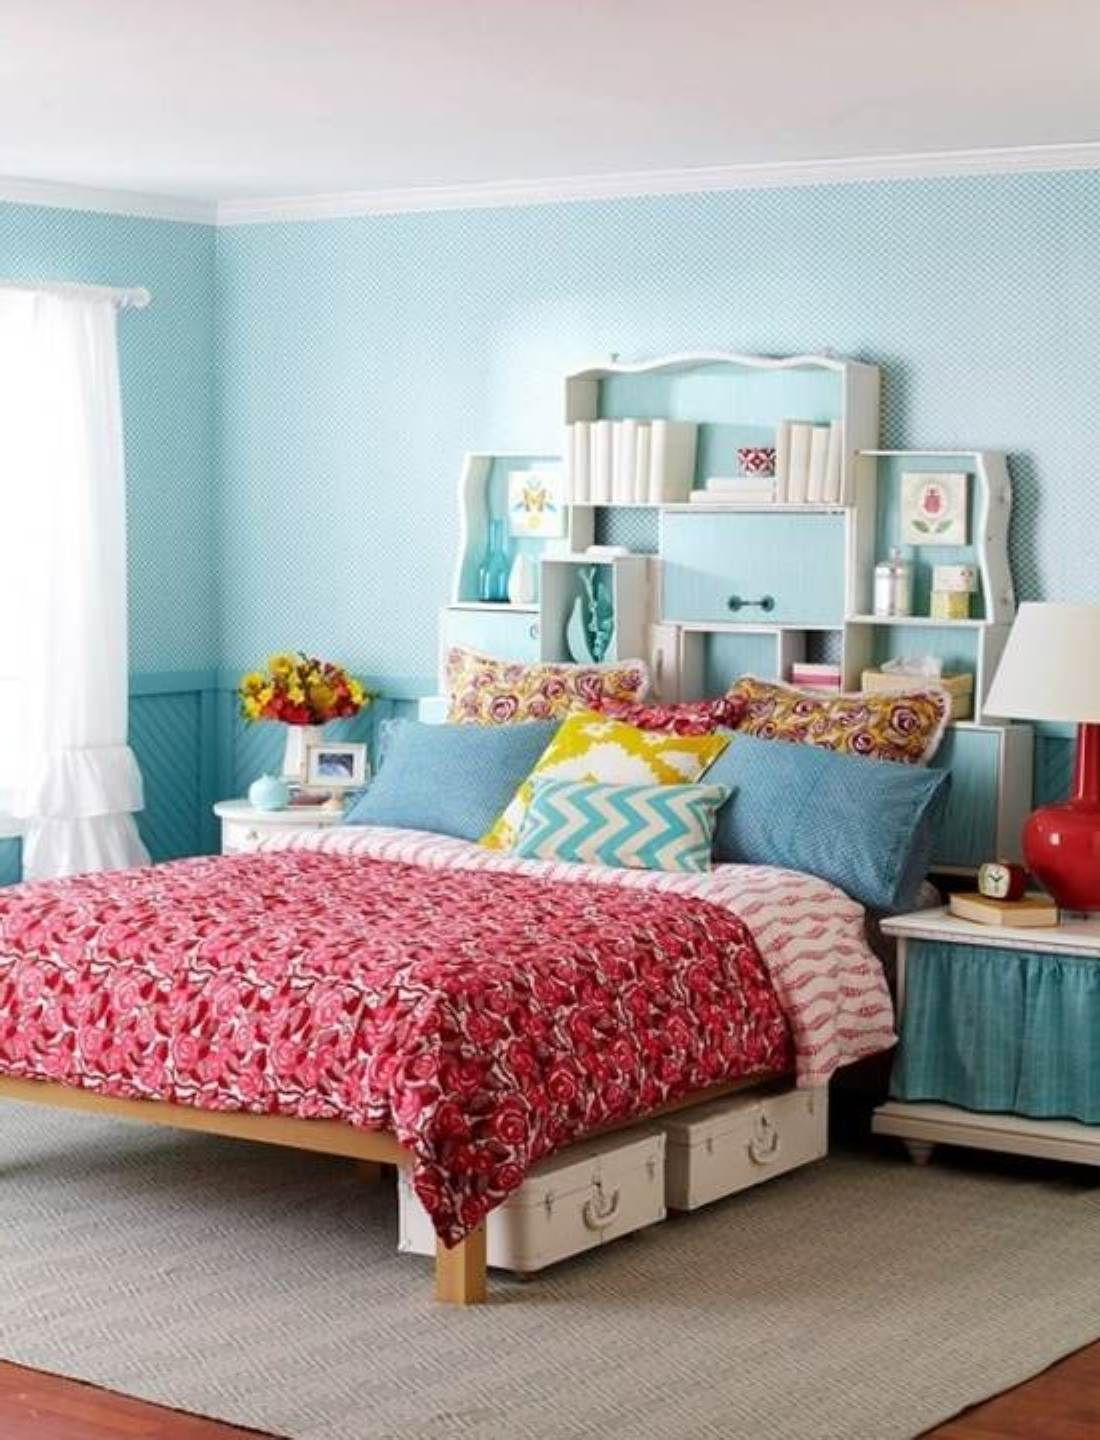 Beauteous Bedroom Design Idea For Teenage Girl With Wooden Queen Bed Frame And Chic Patterned Comforter Set And W Creative Bedroom Bedroom Design Bedroom Decor